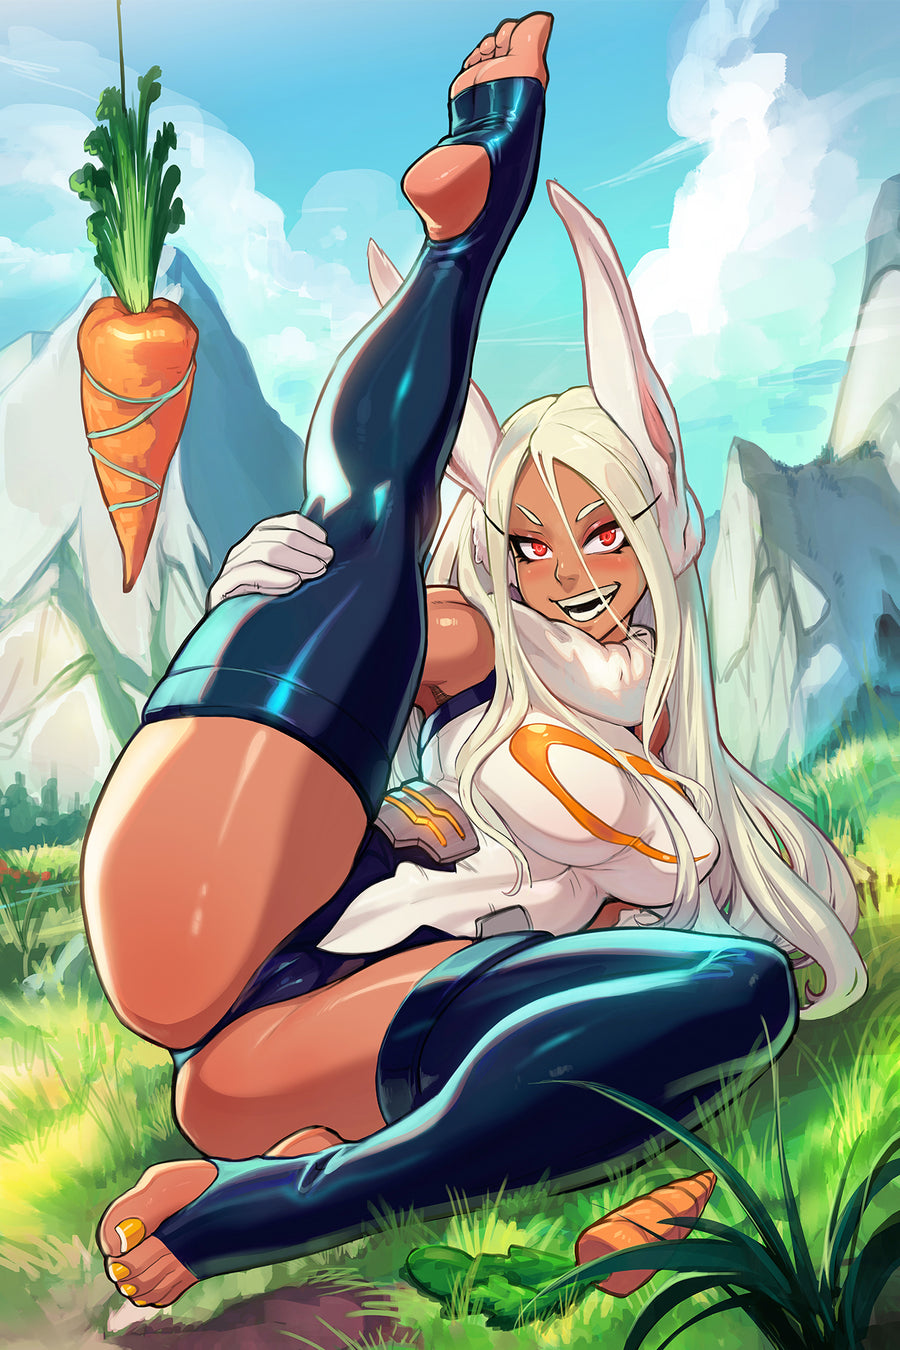 MHA Miruko The Rabbit